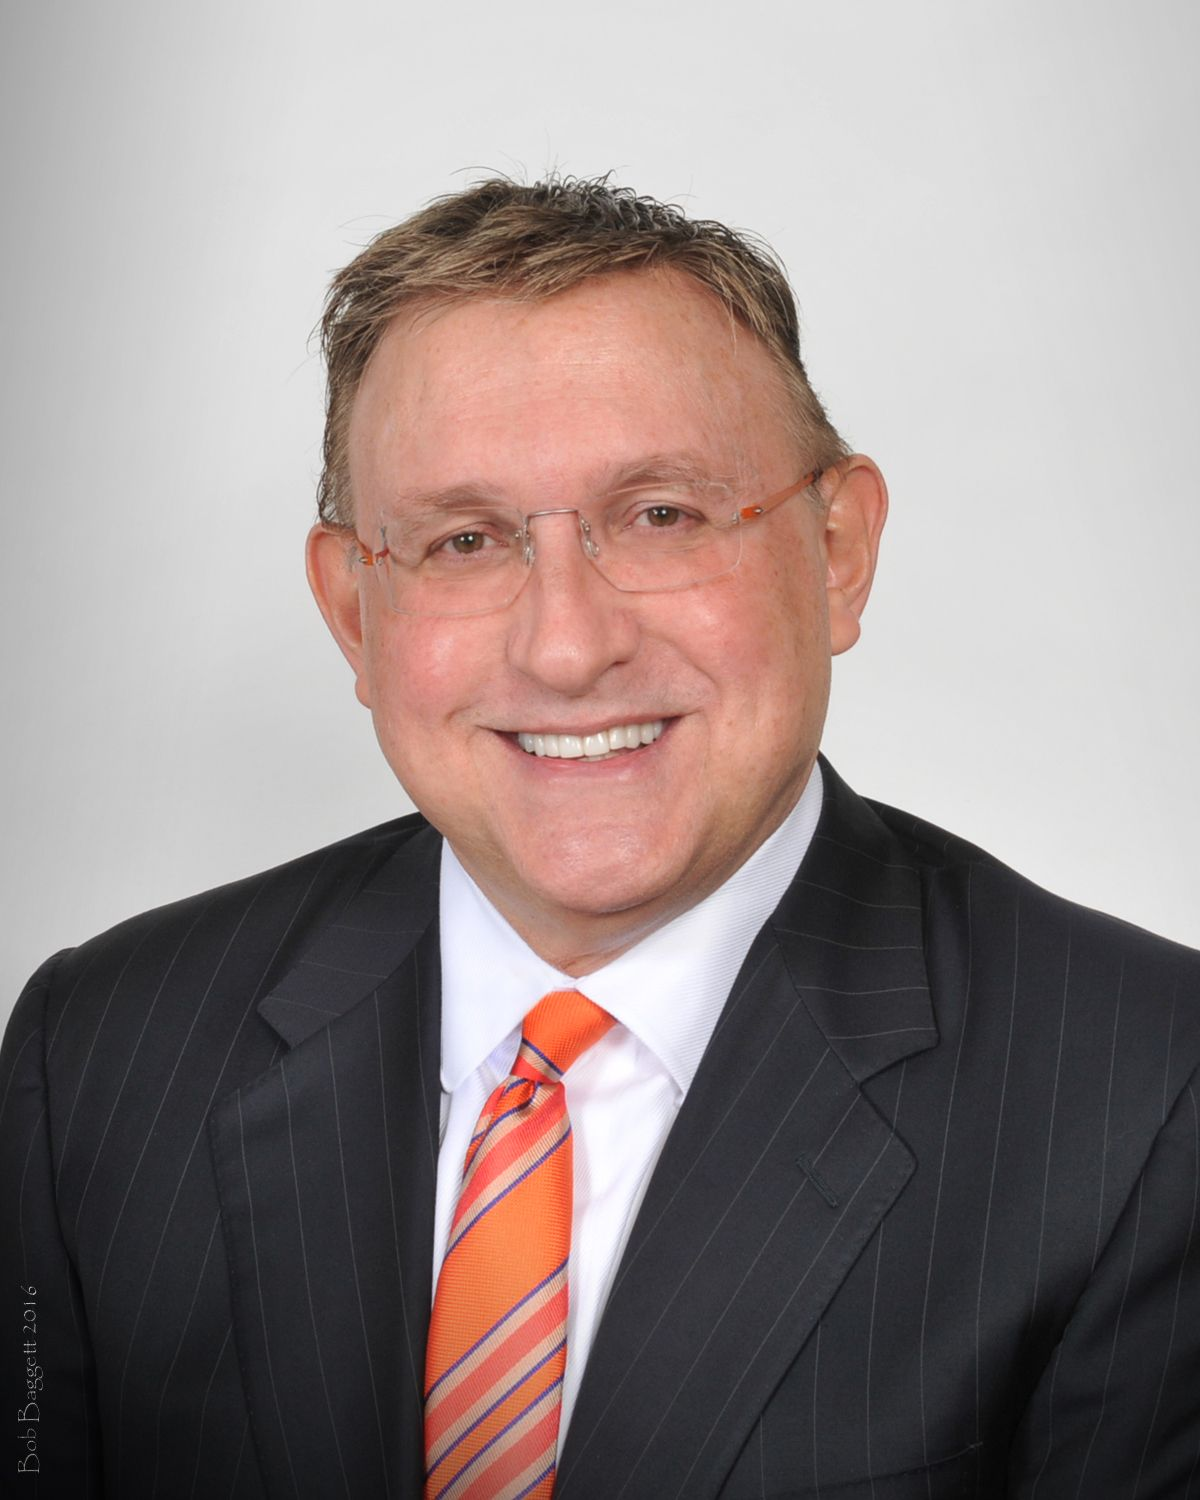 President & CEO, Bob Ritchie, has over 25 years experience